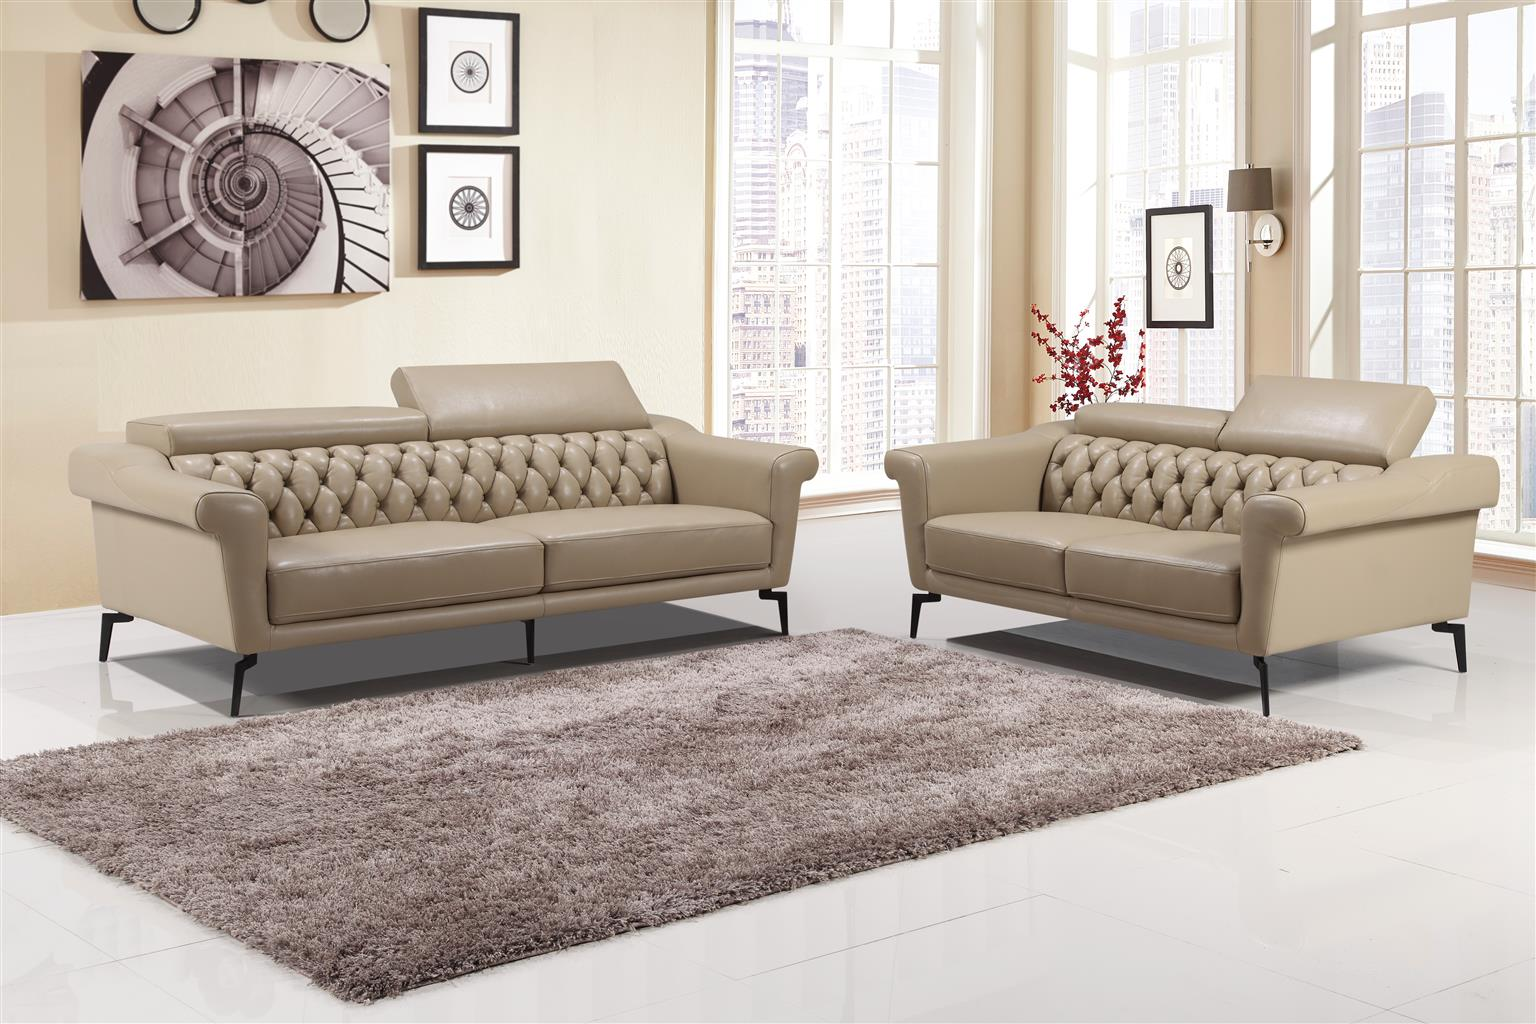 LOUNGE SUITE BRAND NEW CHESTERFIELD FOR ONLY R 12 499!